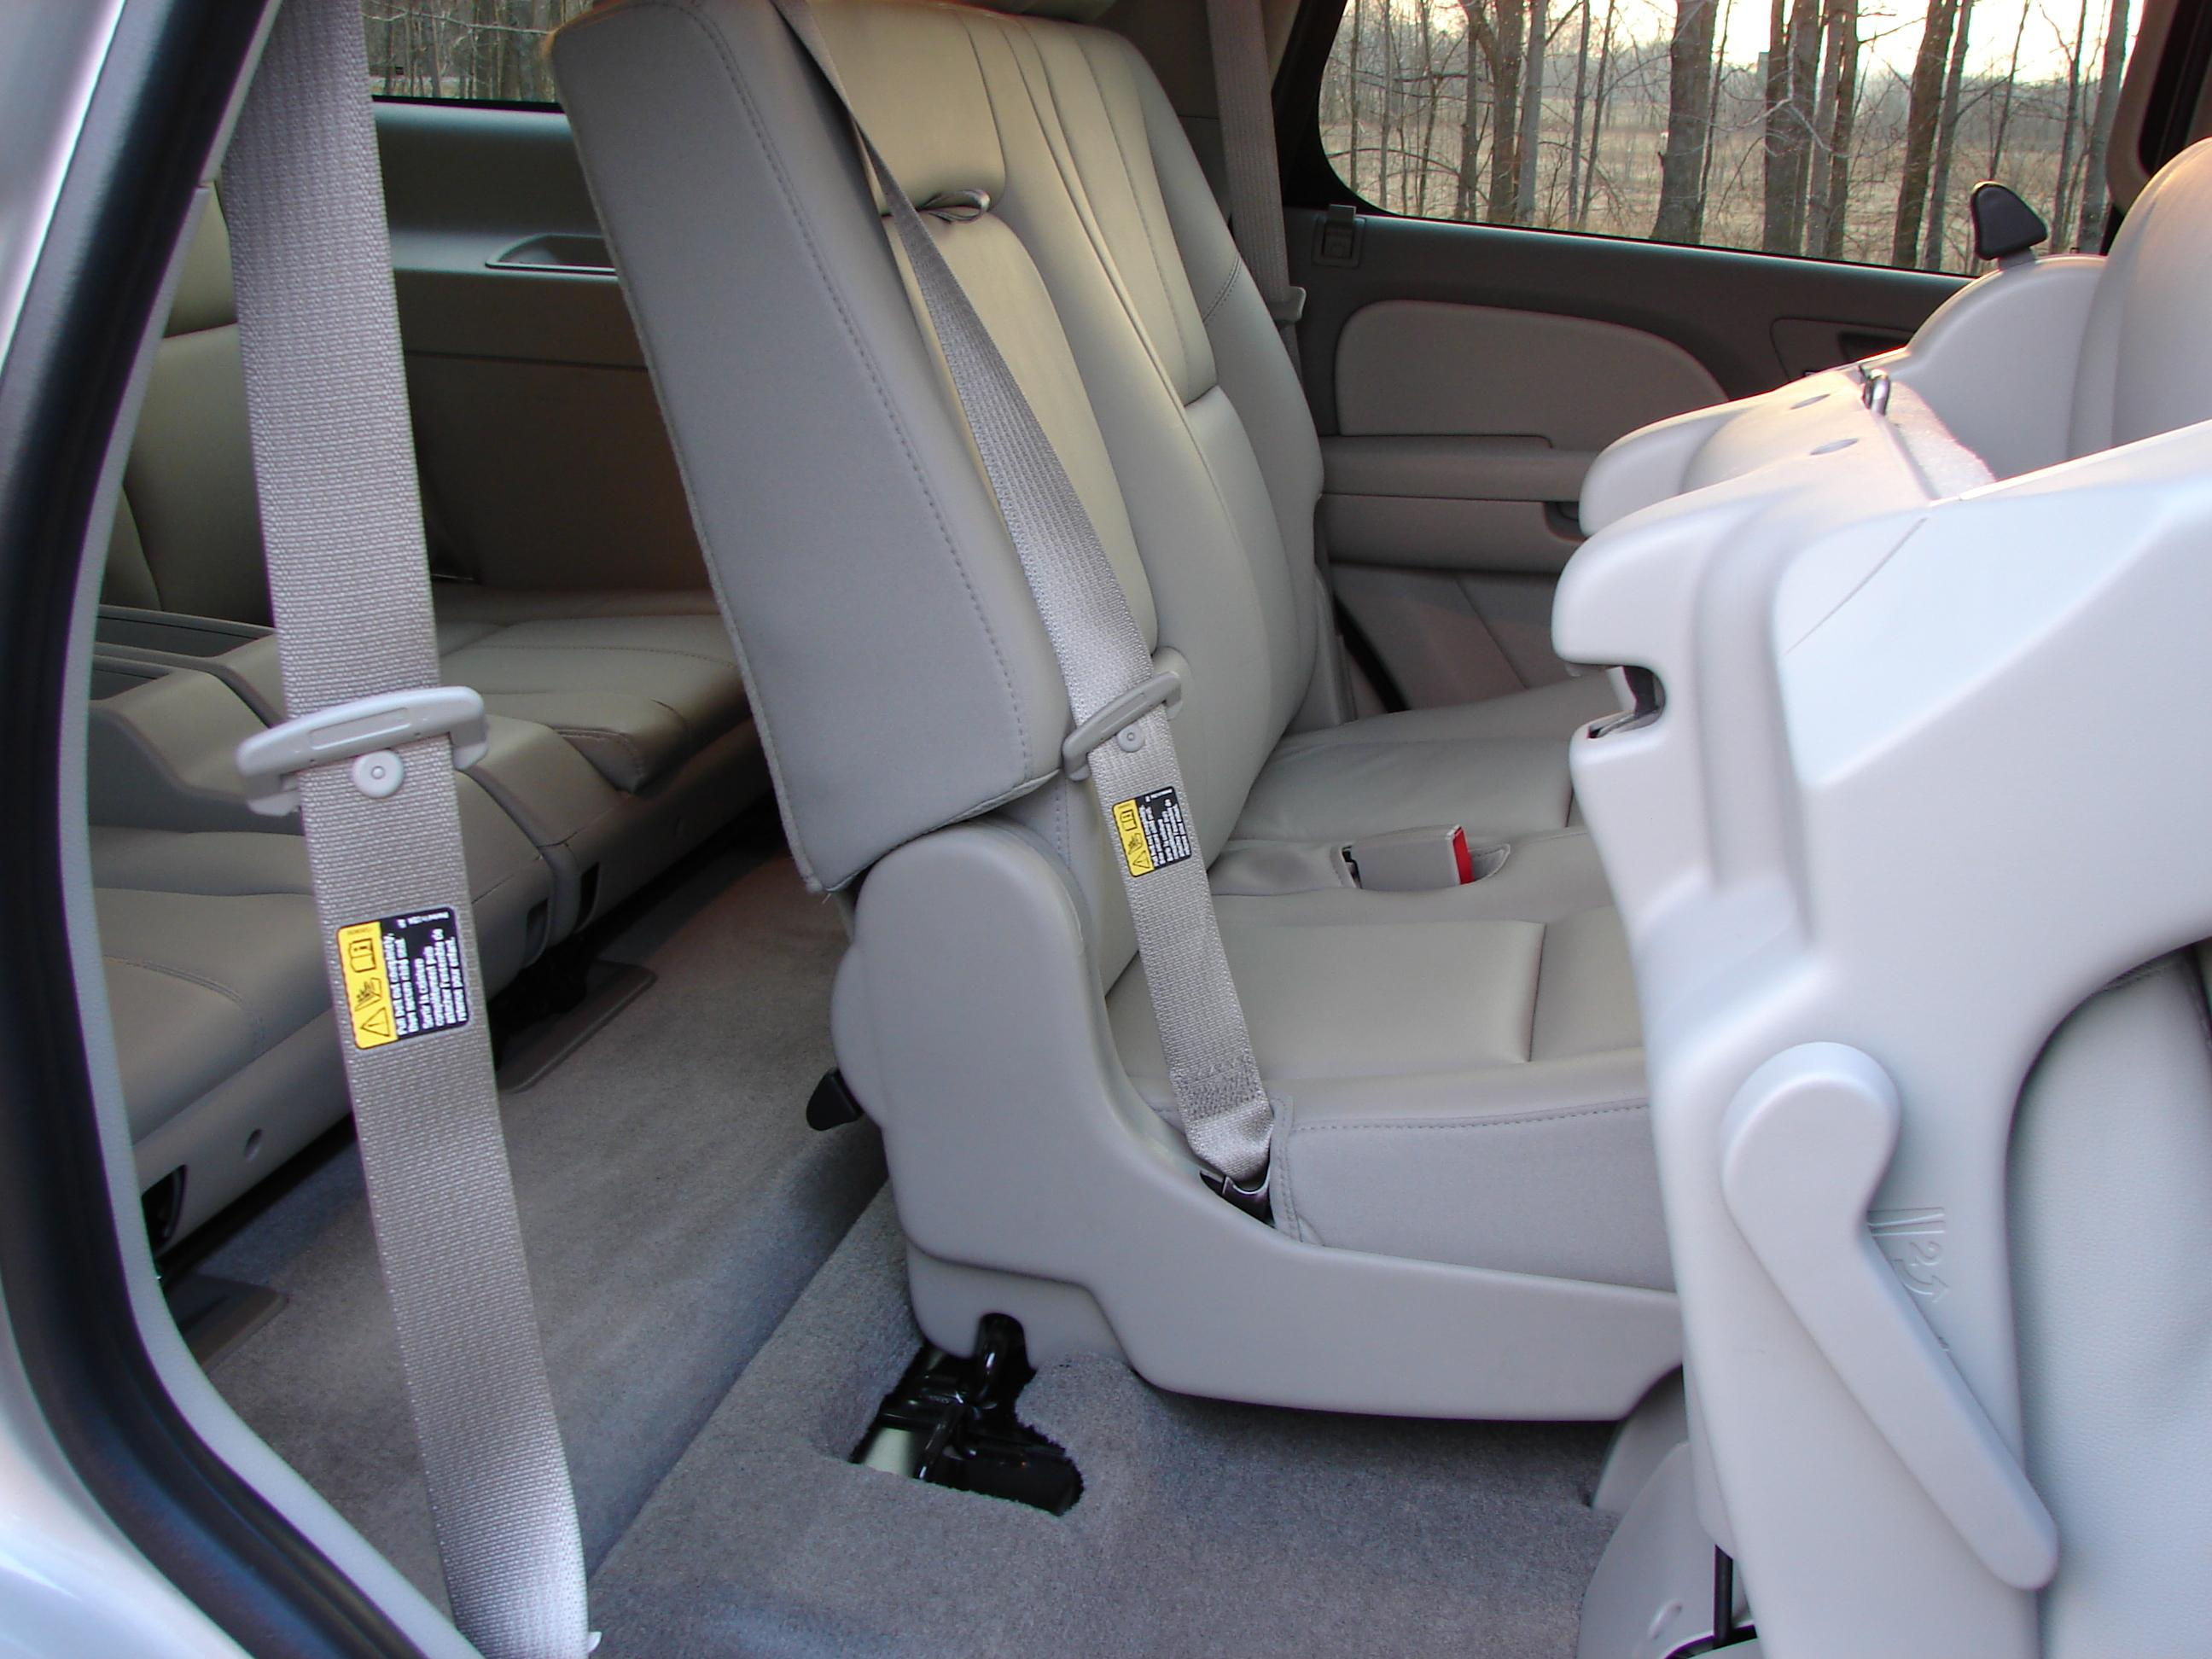 2005 chevy tahoe seat parts velcromag for 1998 chevy tahoe interior parts